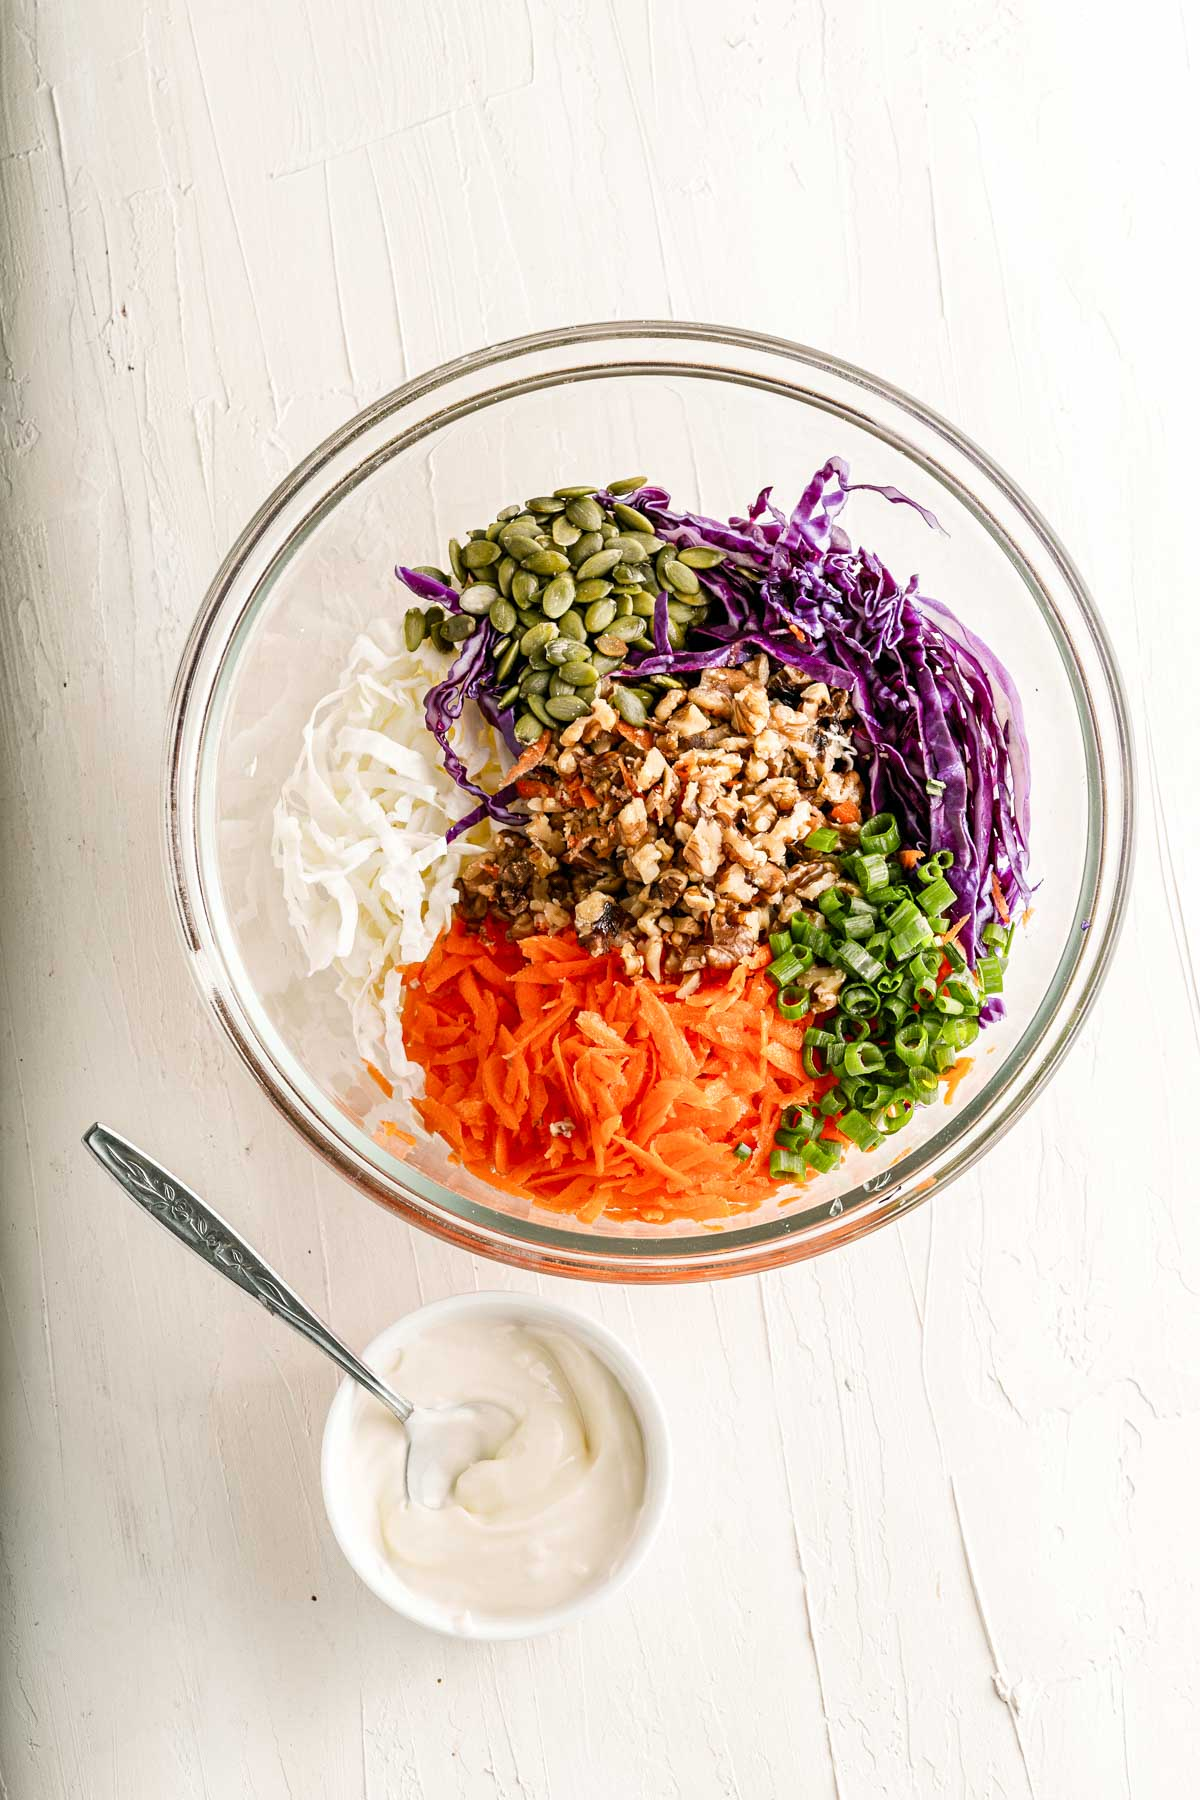 coleslaw ingredients in a bowl chopped